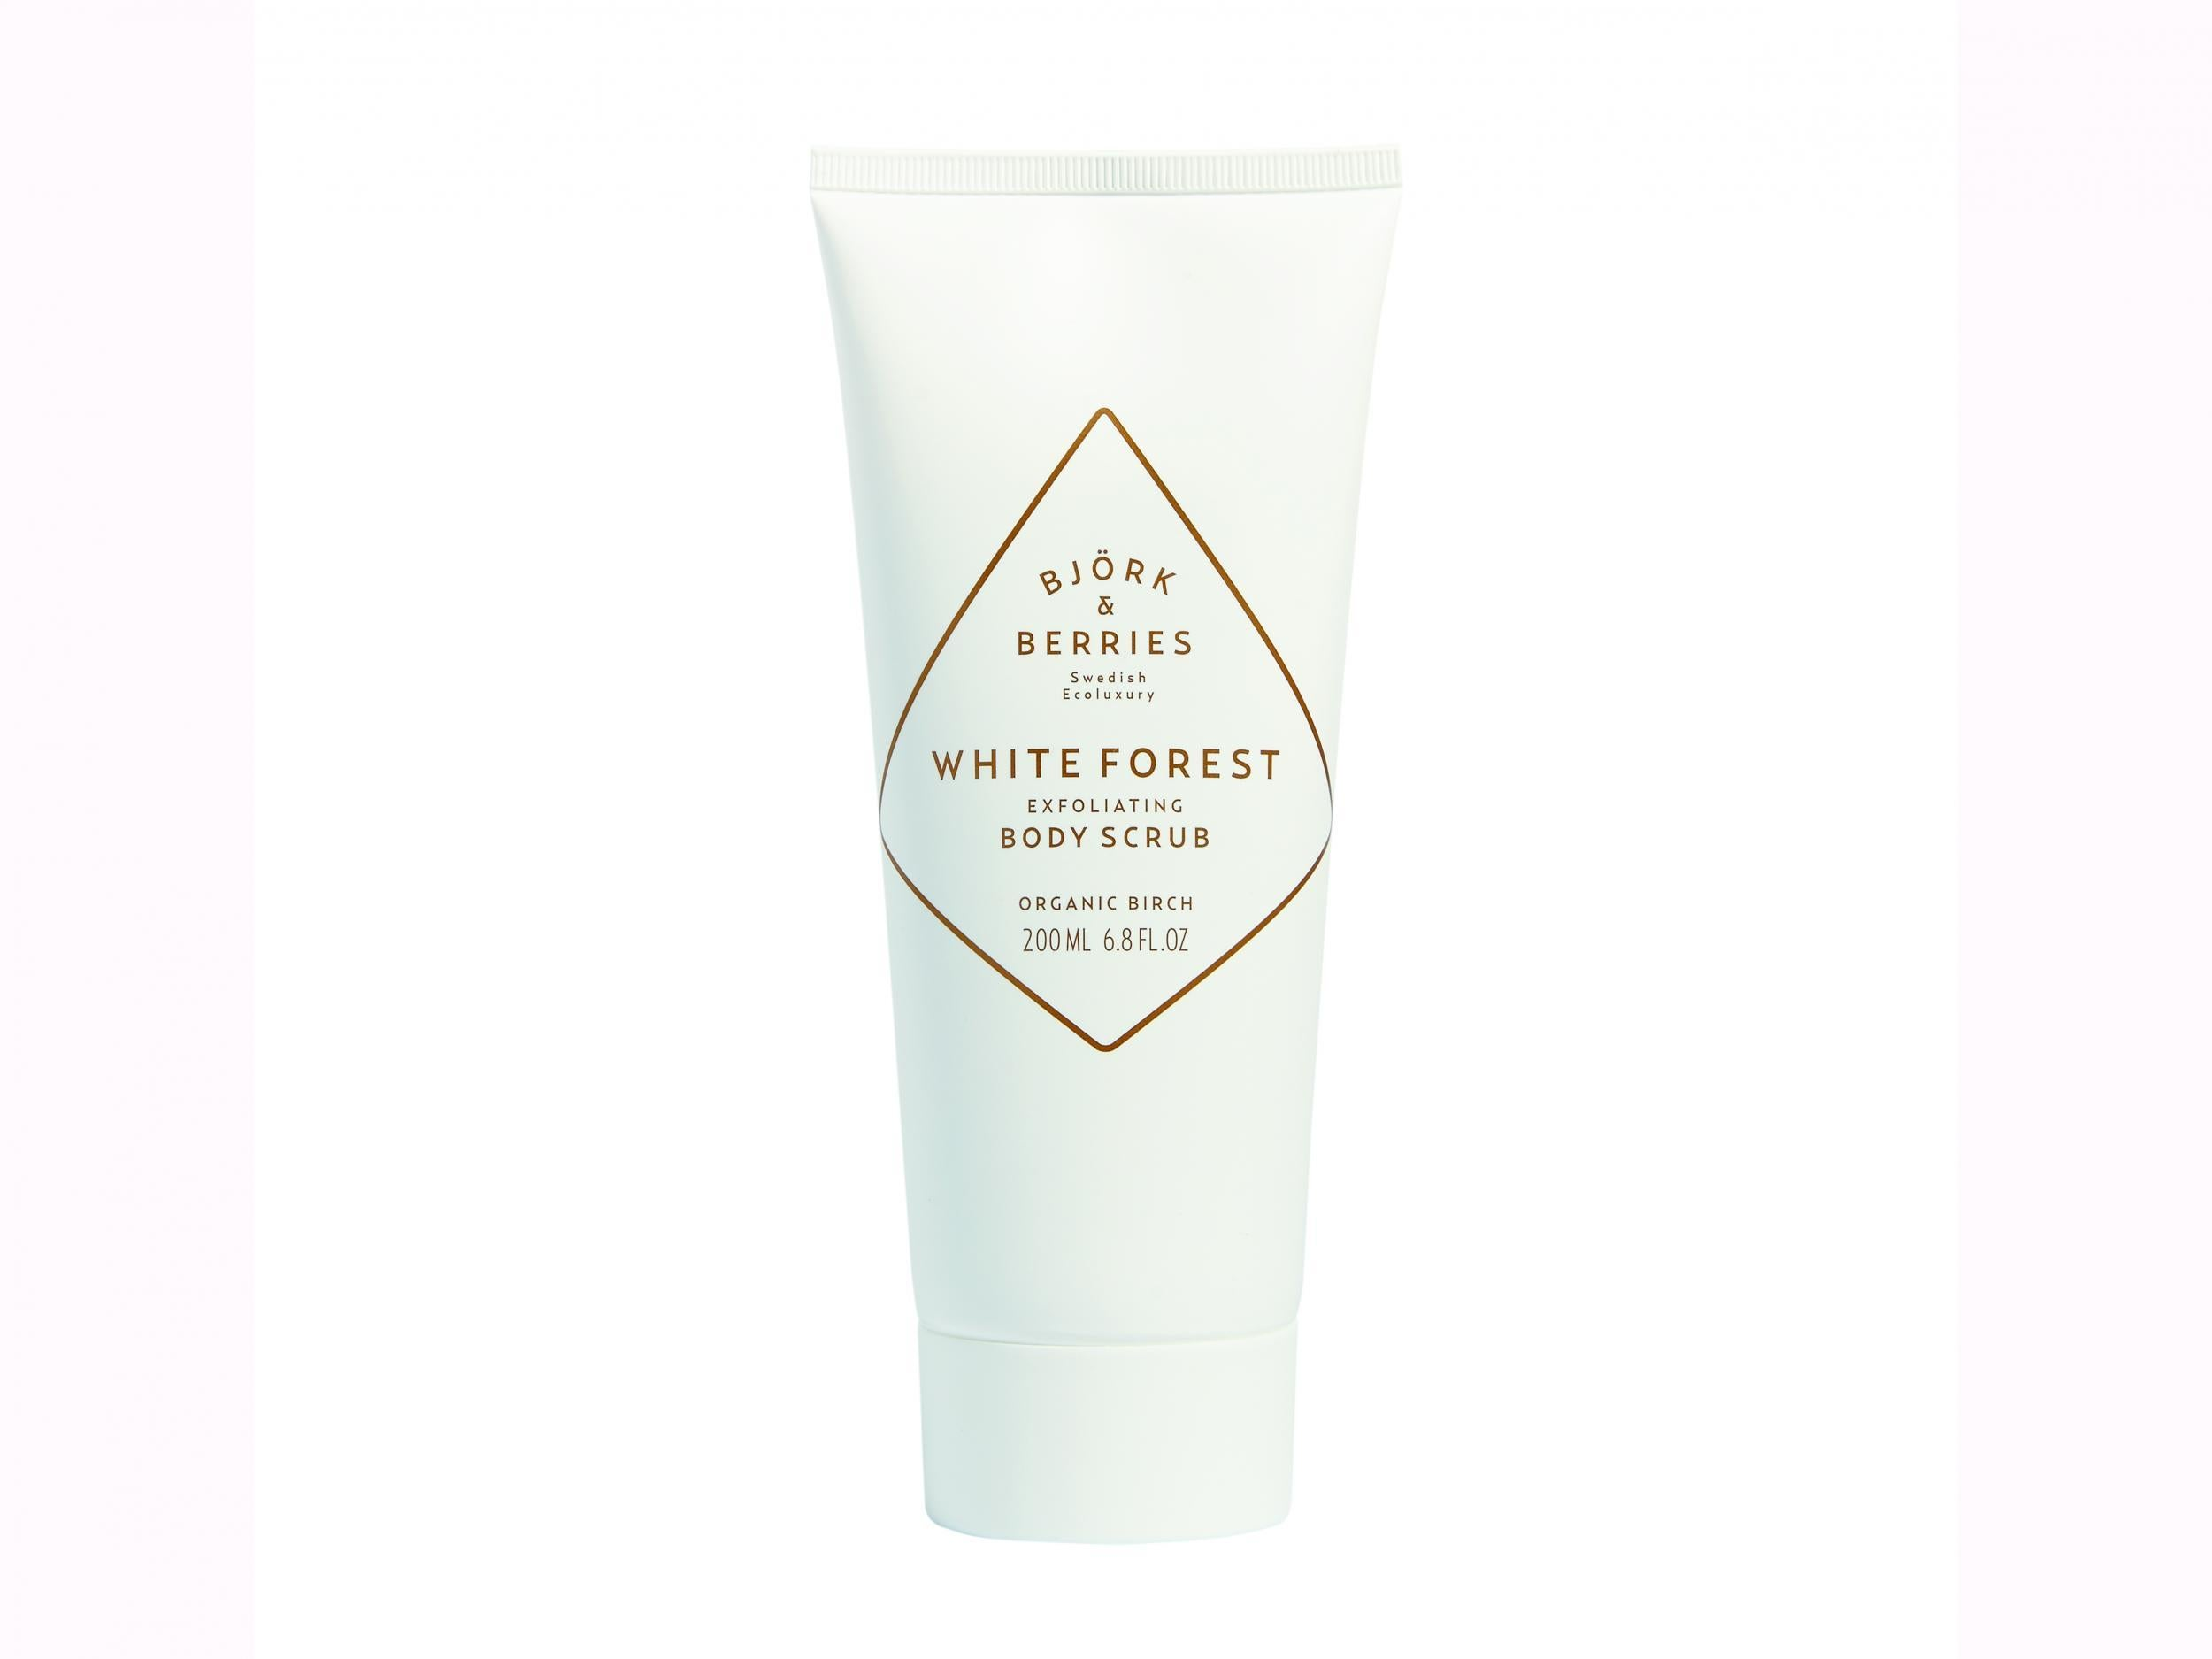 13 Best Body Scrubs The Independent Buy 1 Get White Garden Hand Ampamp Lotion Pink Rose 250ml Bjork And Berries Forest Scrub 24 Cult Beauty